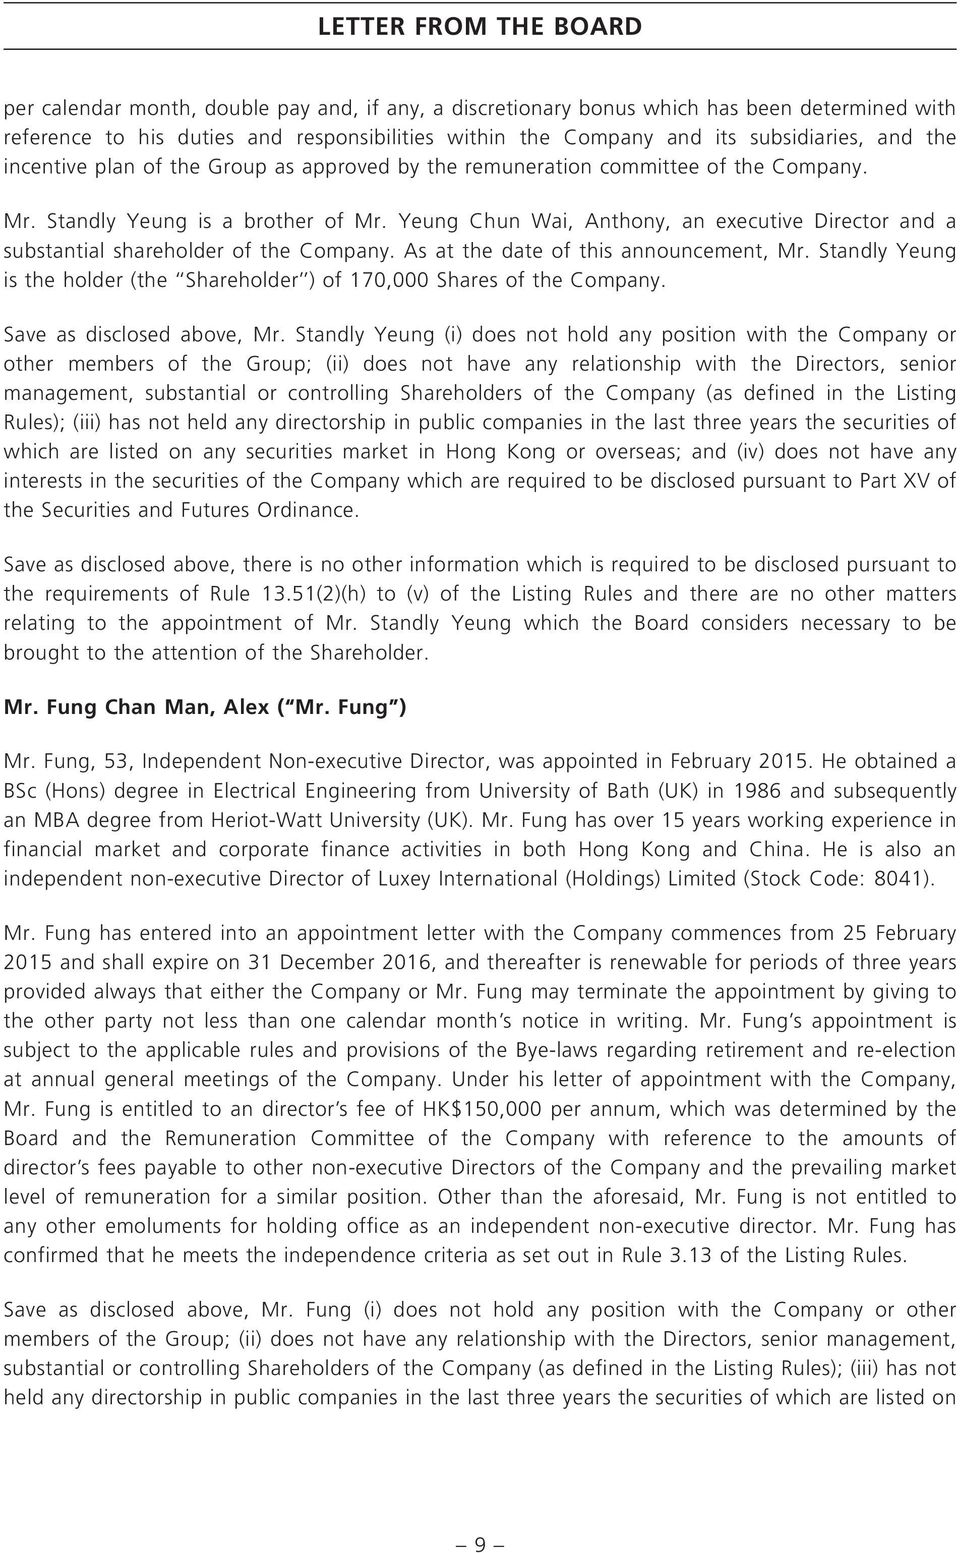 Yeung Chun Wai, Anthony, an executive Director and a substantial shareholder of the Company. As at the date of this announcement, Mr.